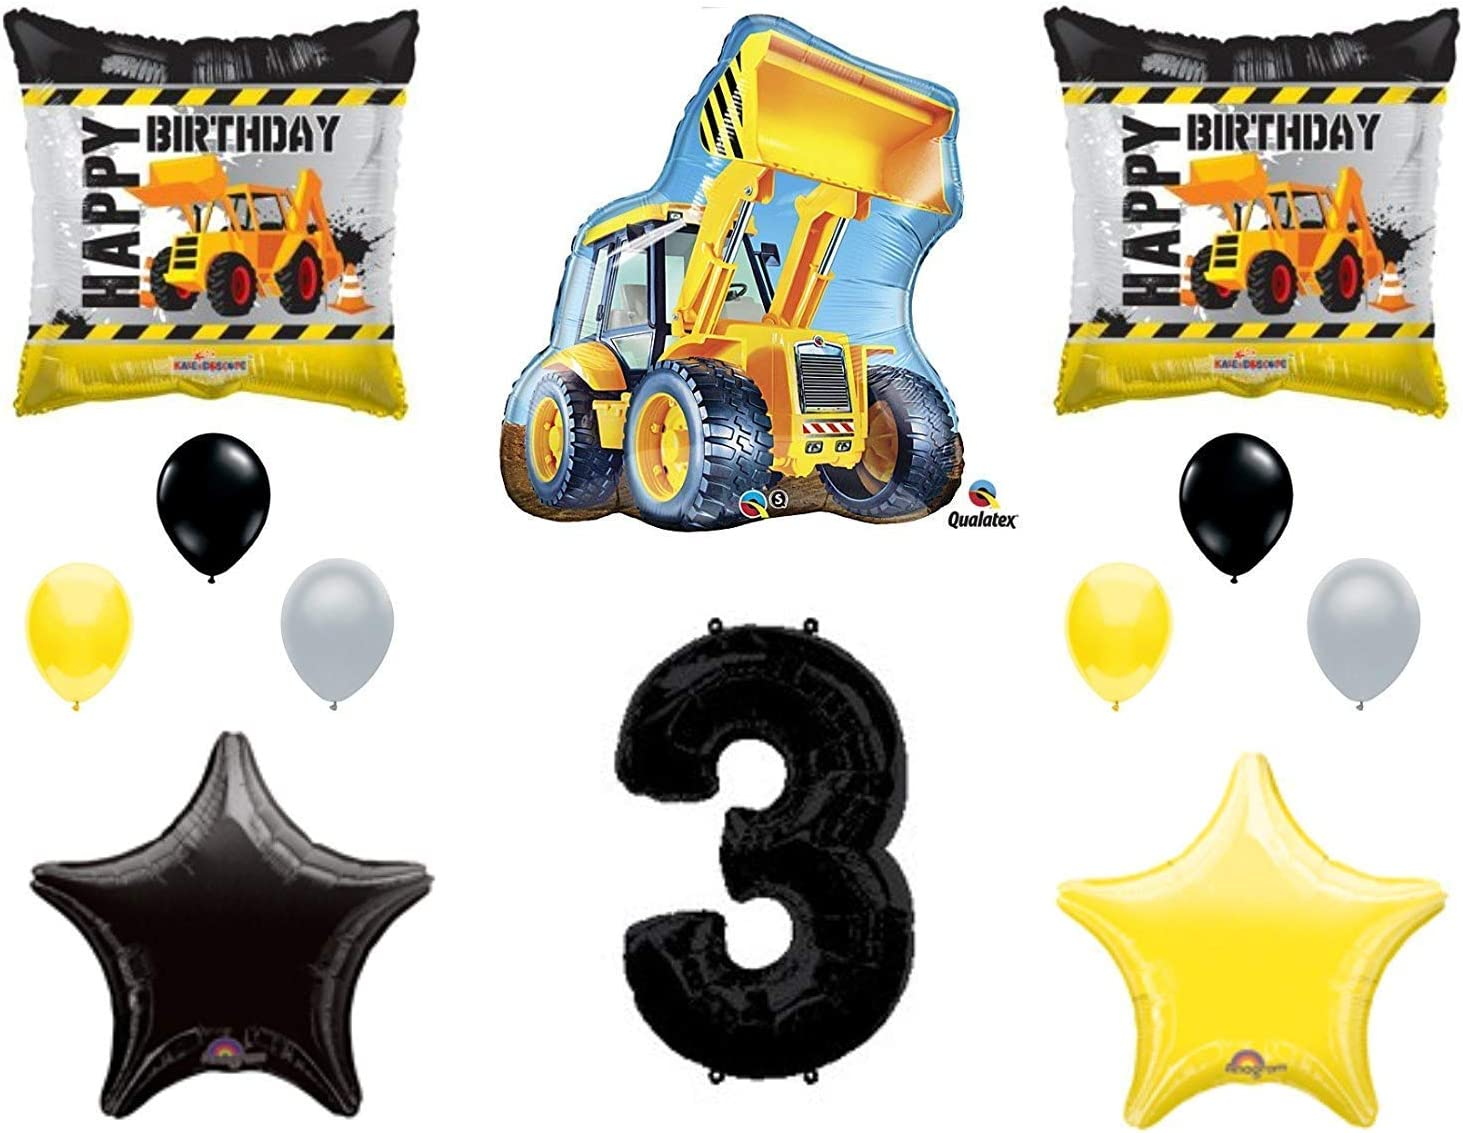 BALL-009-CAR 36 Pack Construction Theme Party Supplies,12 Inch Large Latex Helium Balloons,Construction Balloons for Kids Boys Builder Themed Birthday Party Decorations